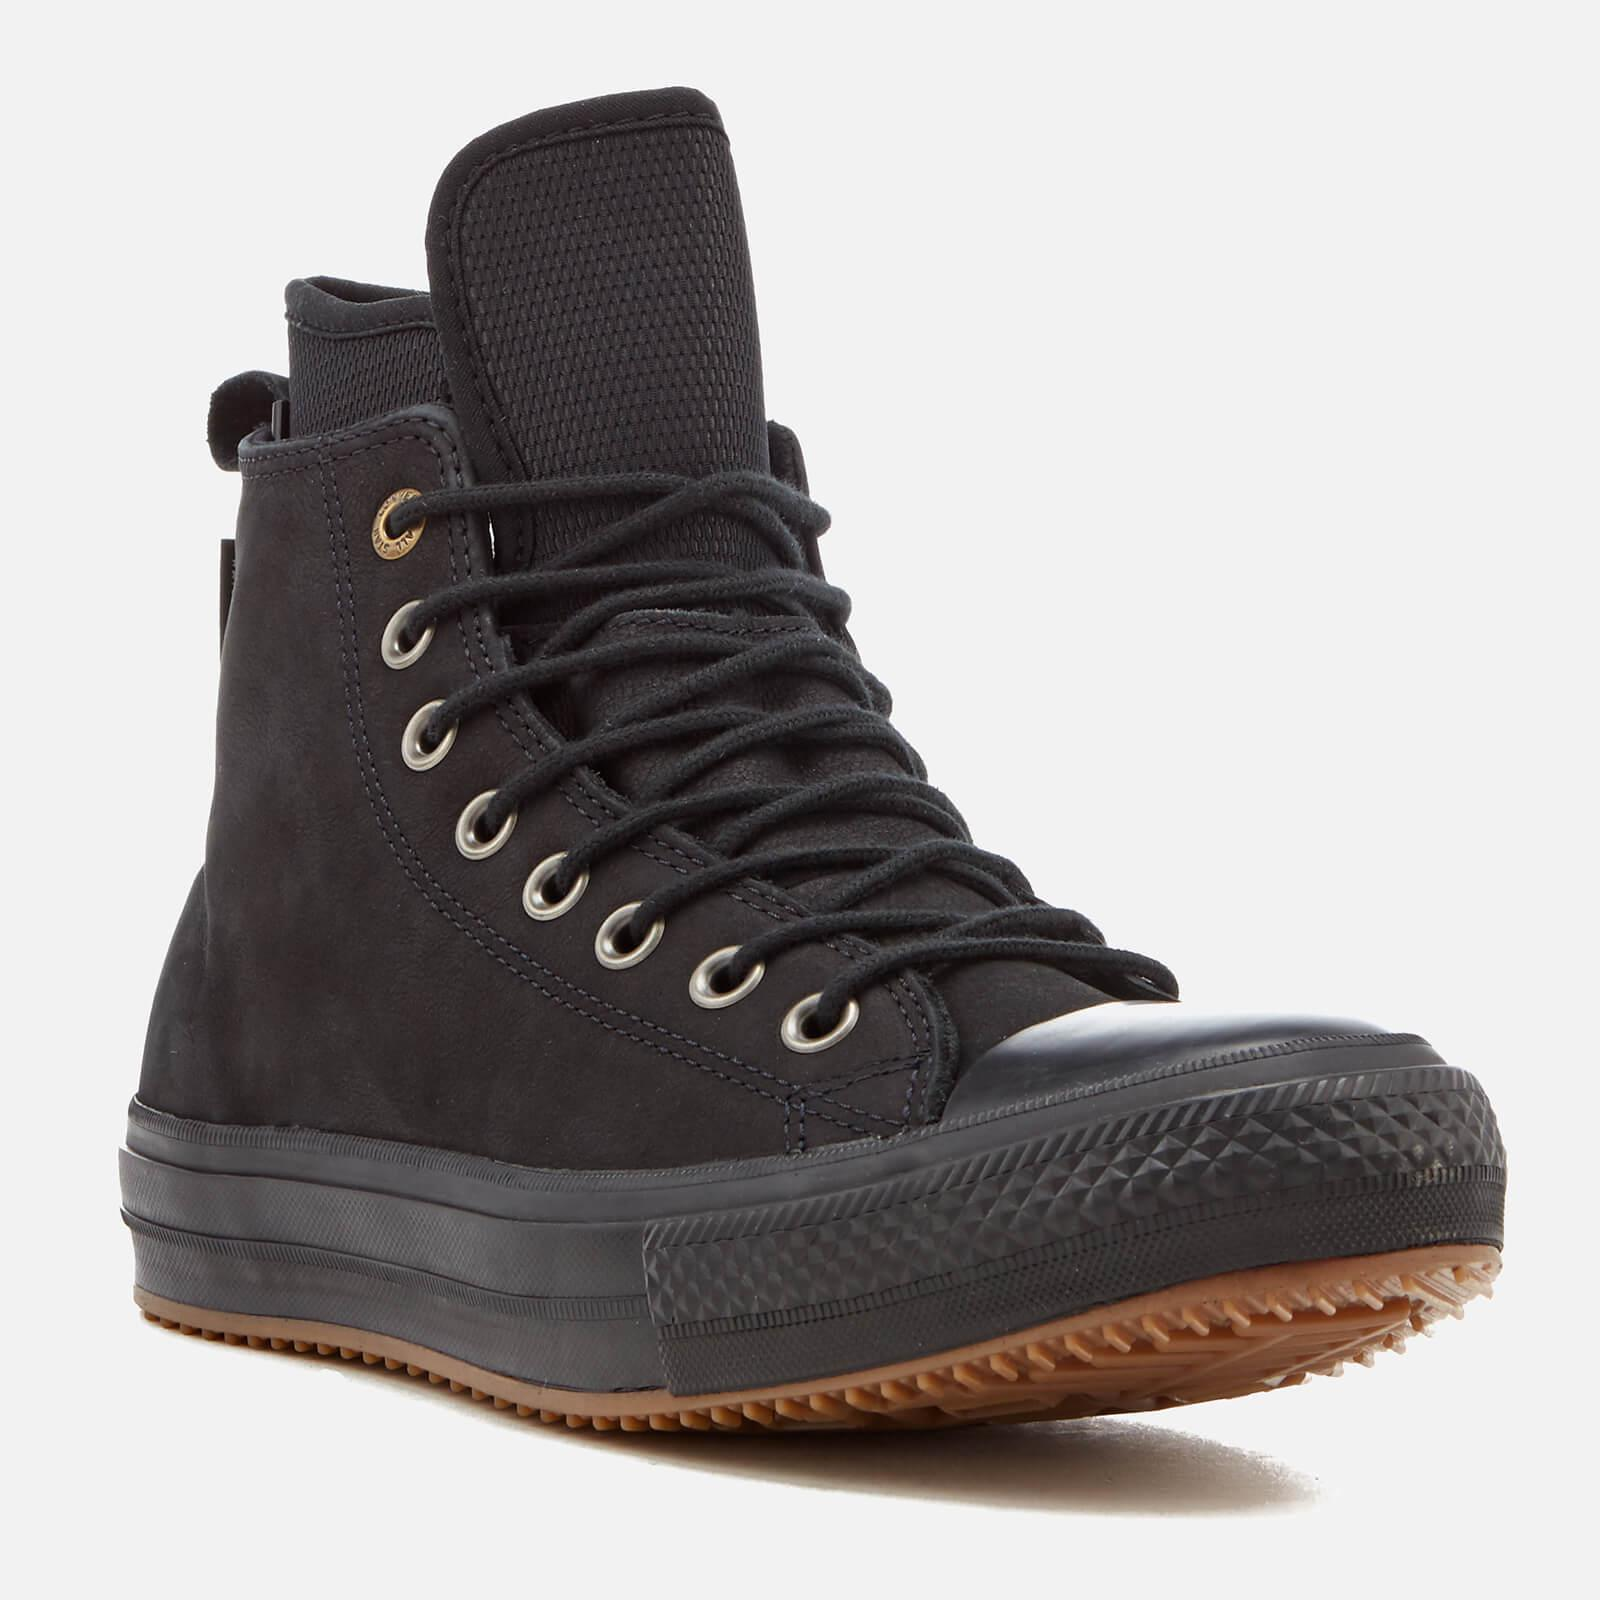 9cdf3fba4 Converse Chuck Taylor All Star Waterproof Boots in Black for Men - Lyst